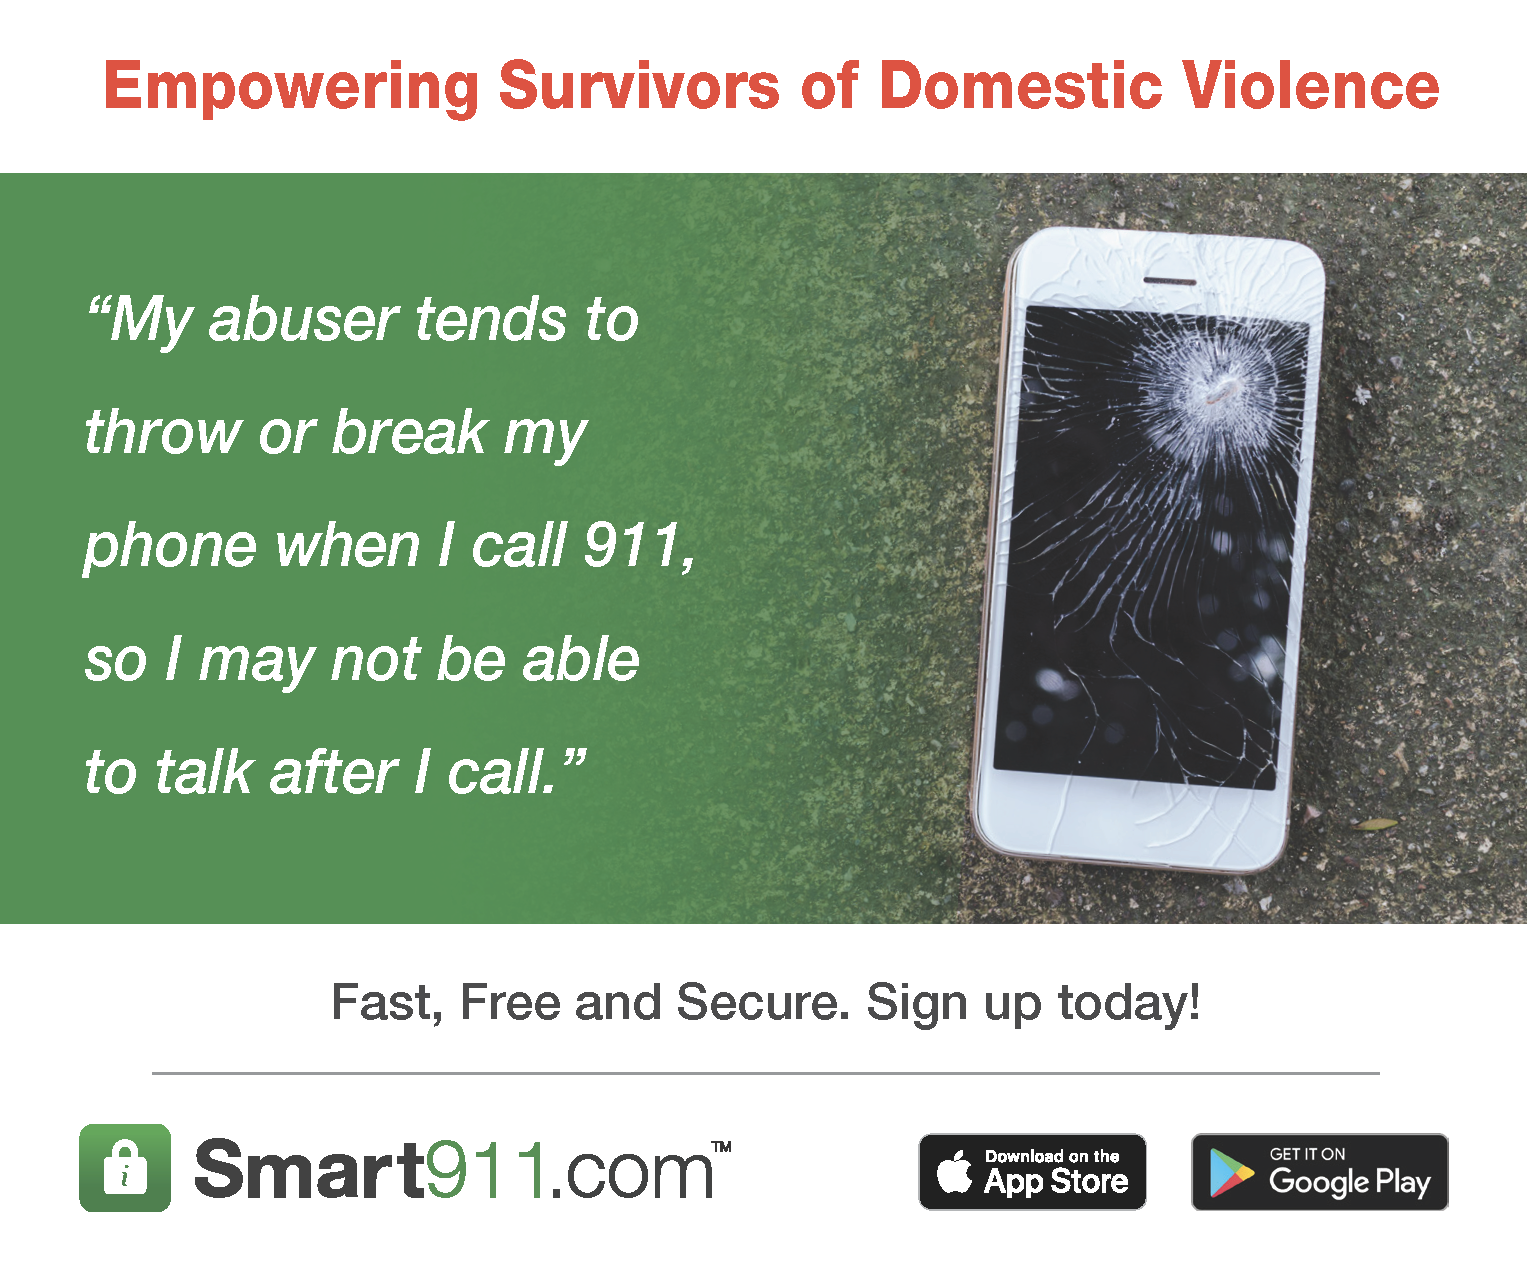 Smart911- DV Empowering Survivors- Social Graphic Collective_Page_5